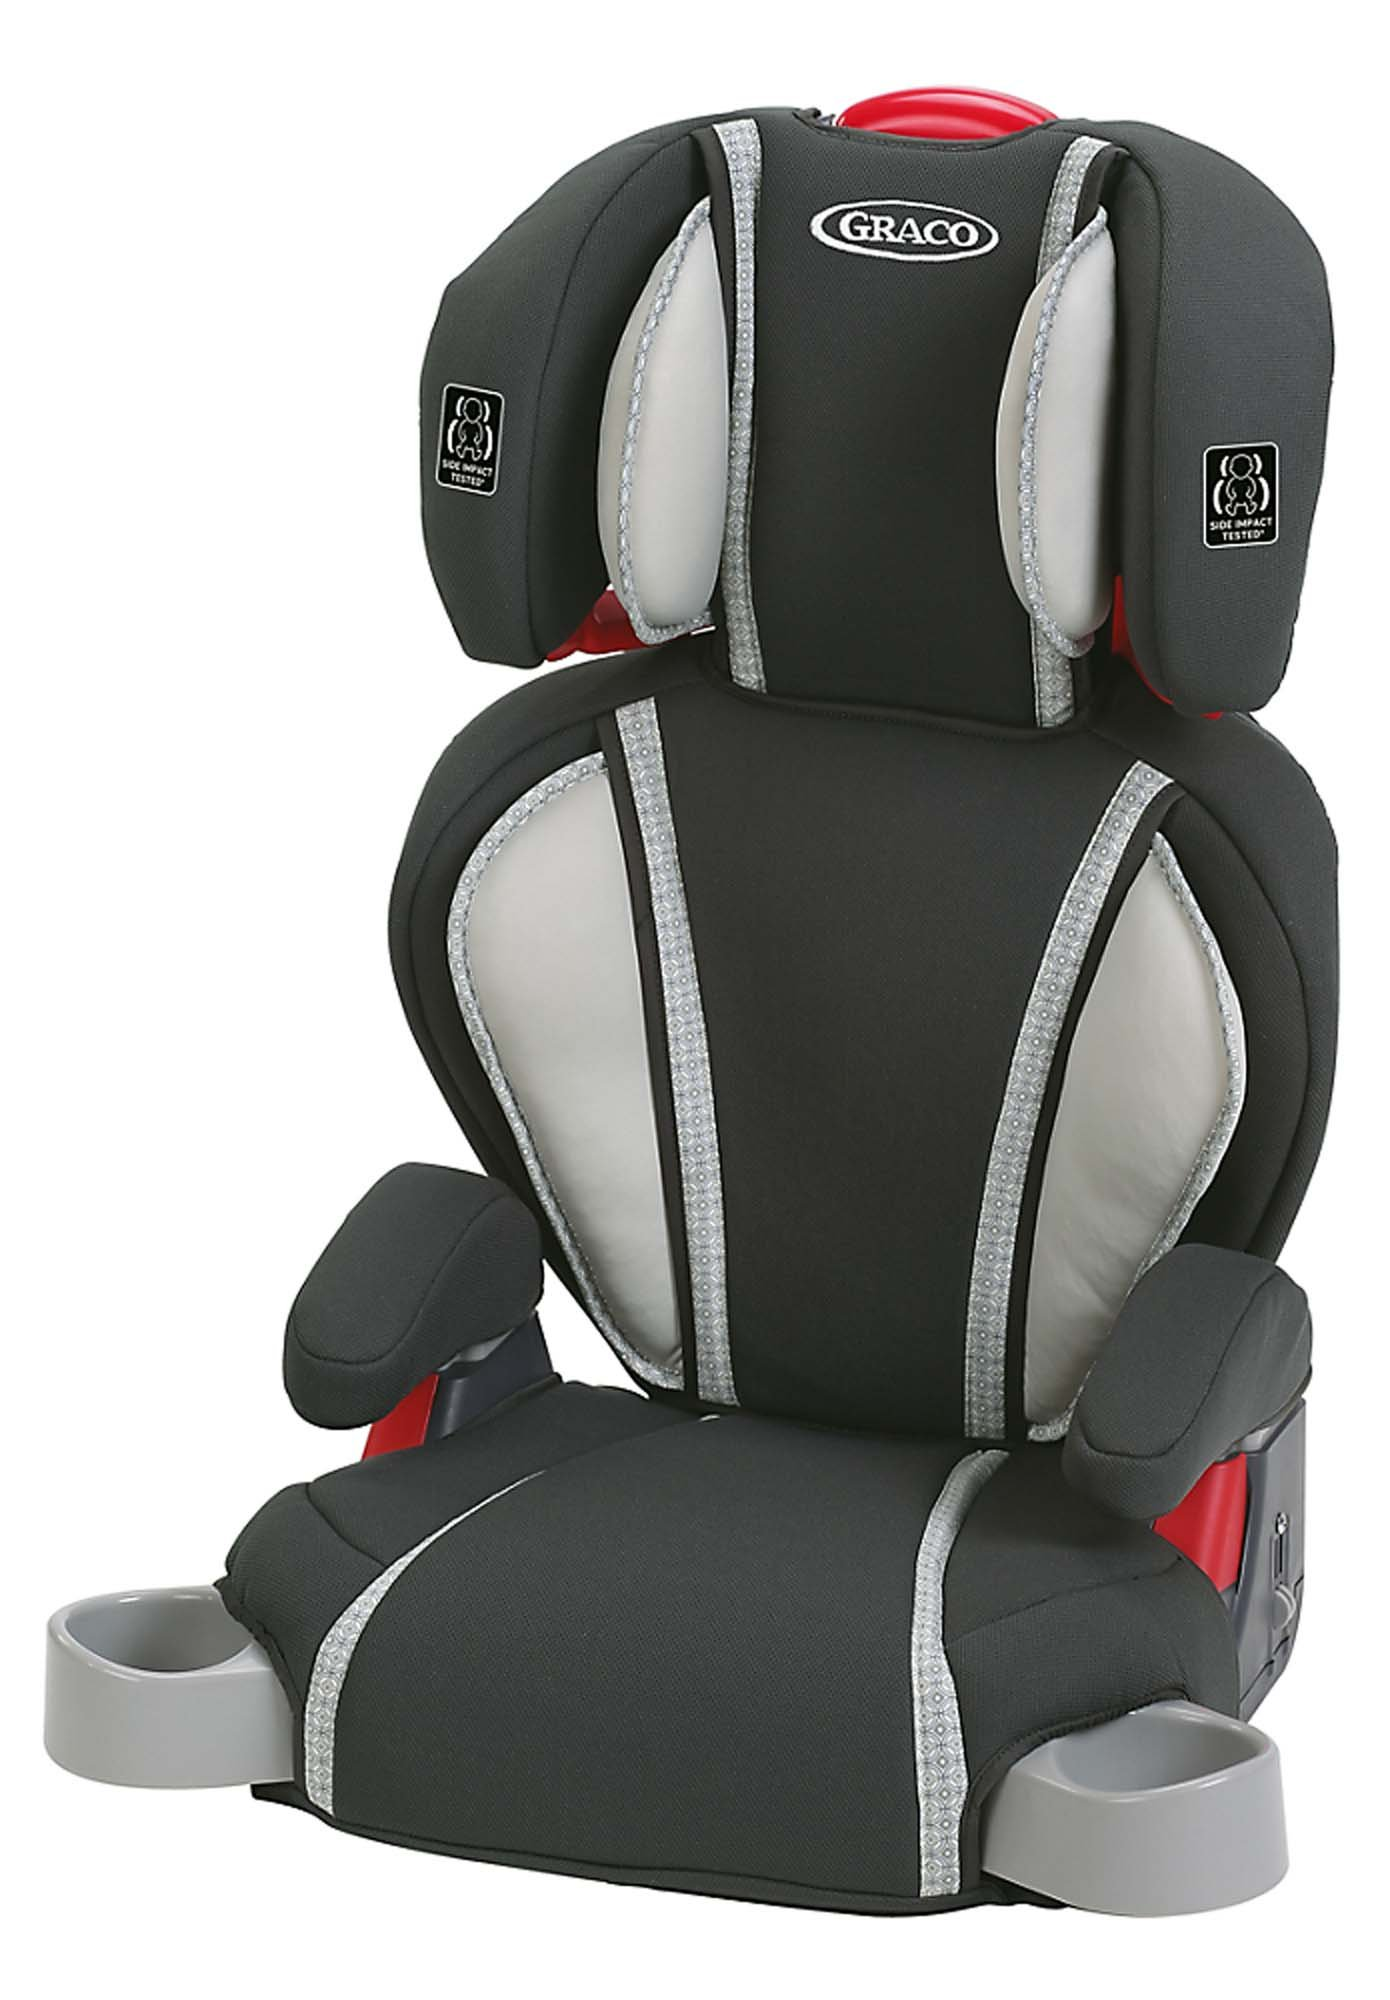 graco backless turbobooster car seat galaxy one size child safety booster car. Black Bedroom Furniture Sets. Home Design Ideas